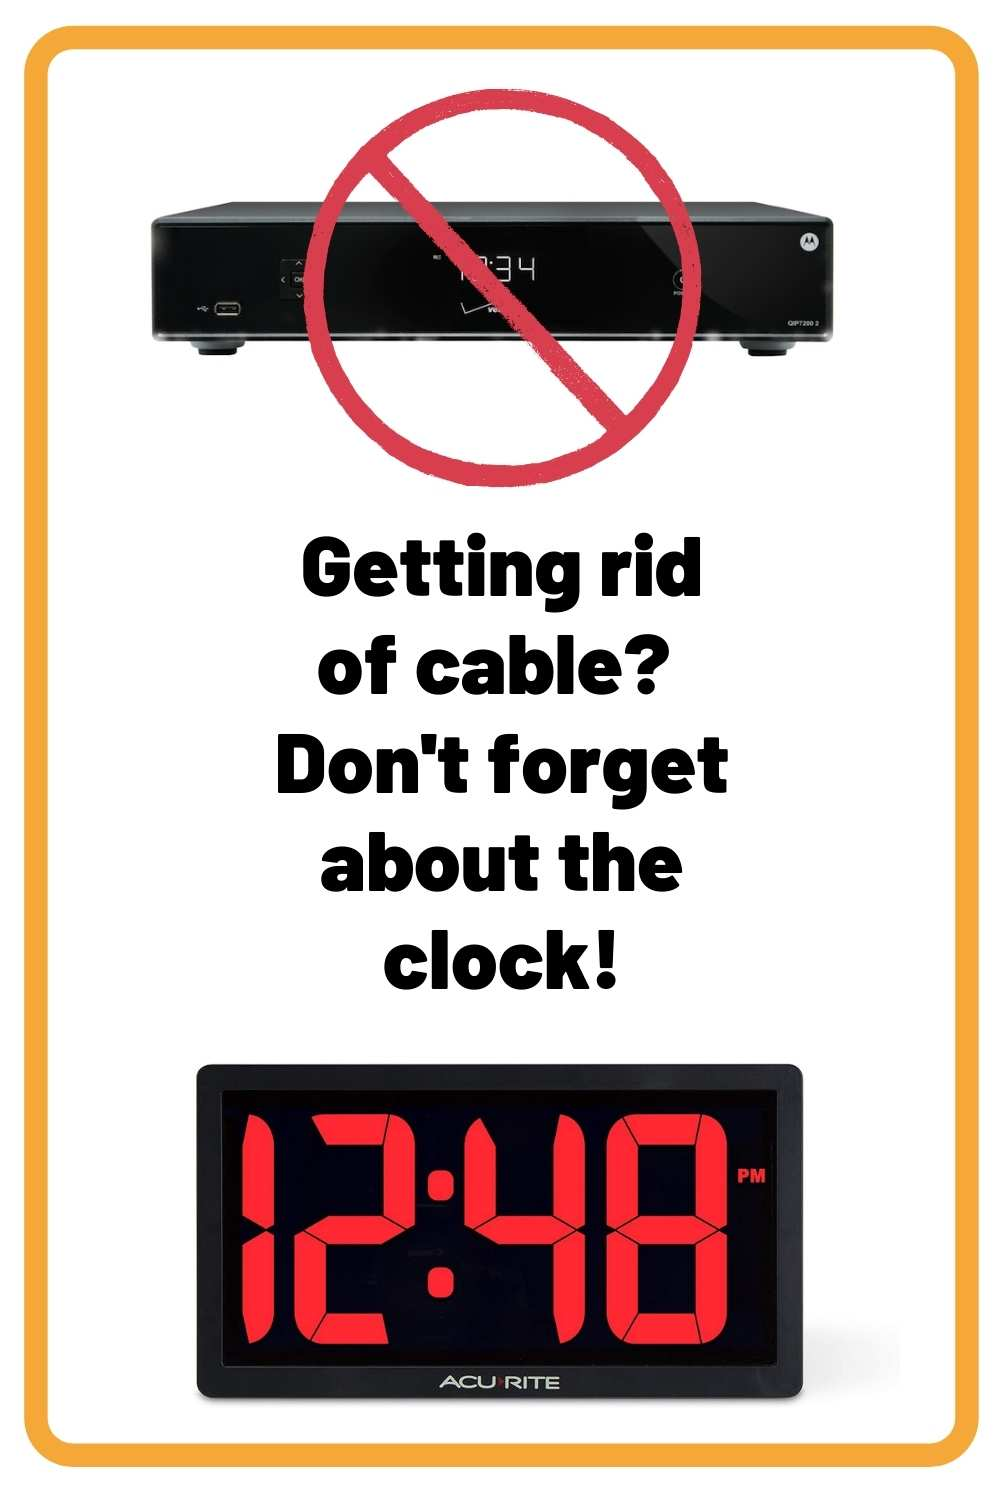 Find a Clock to Replace Your Cable Box Clock